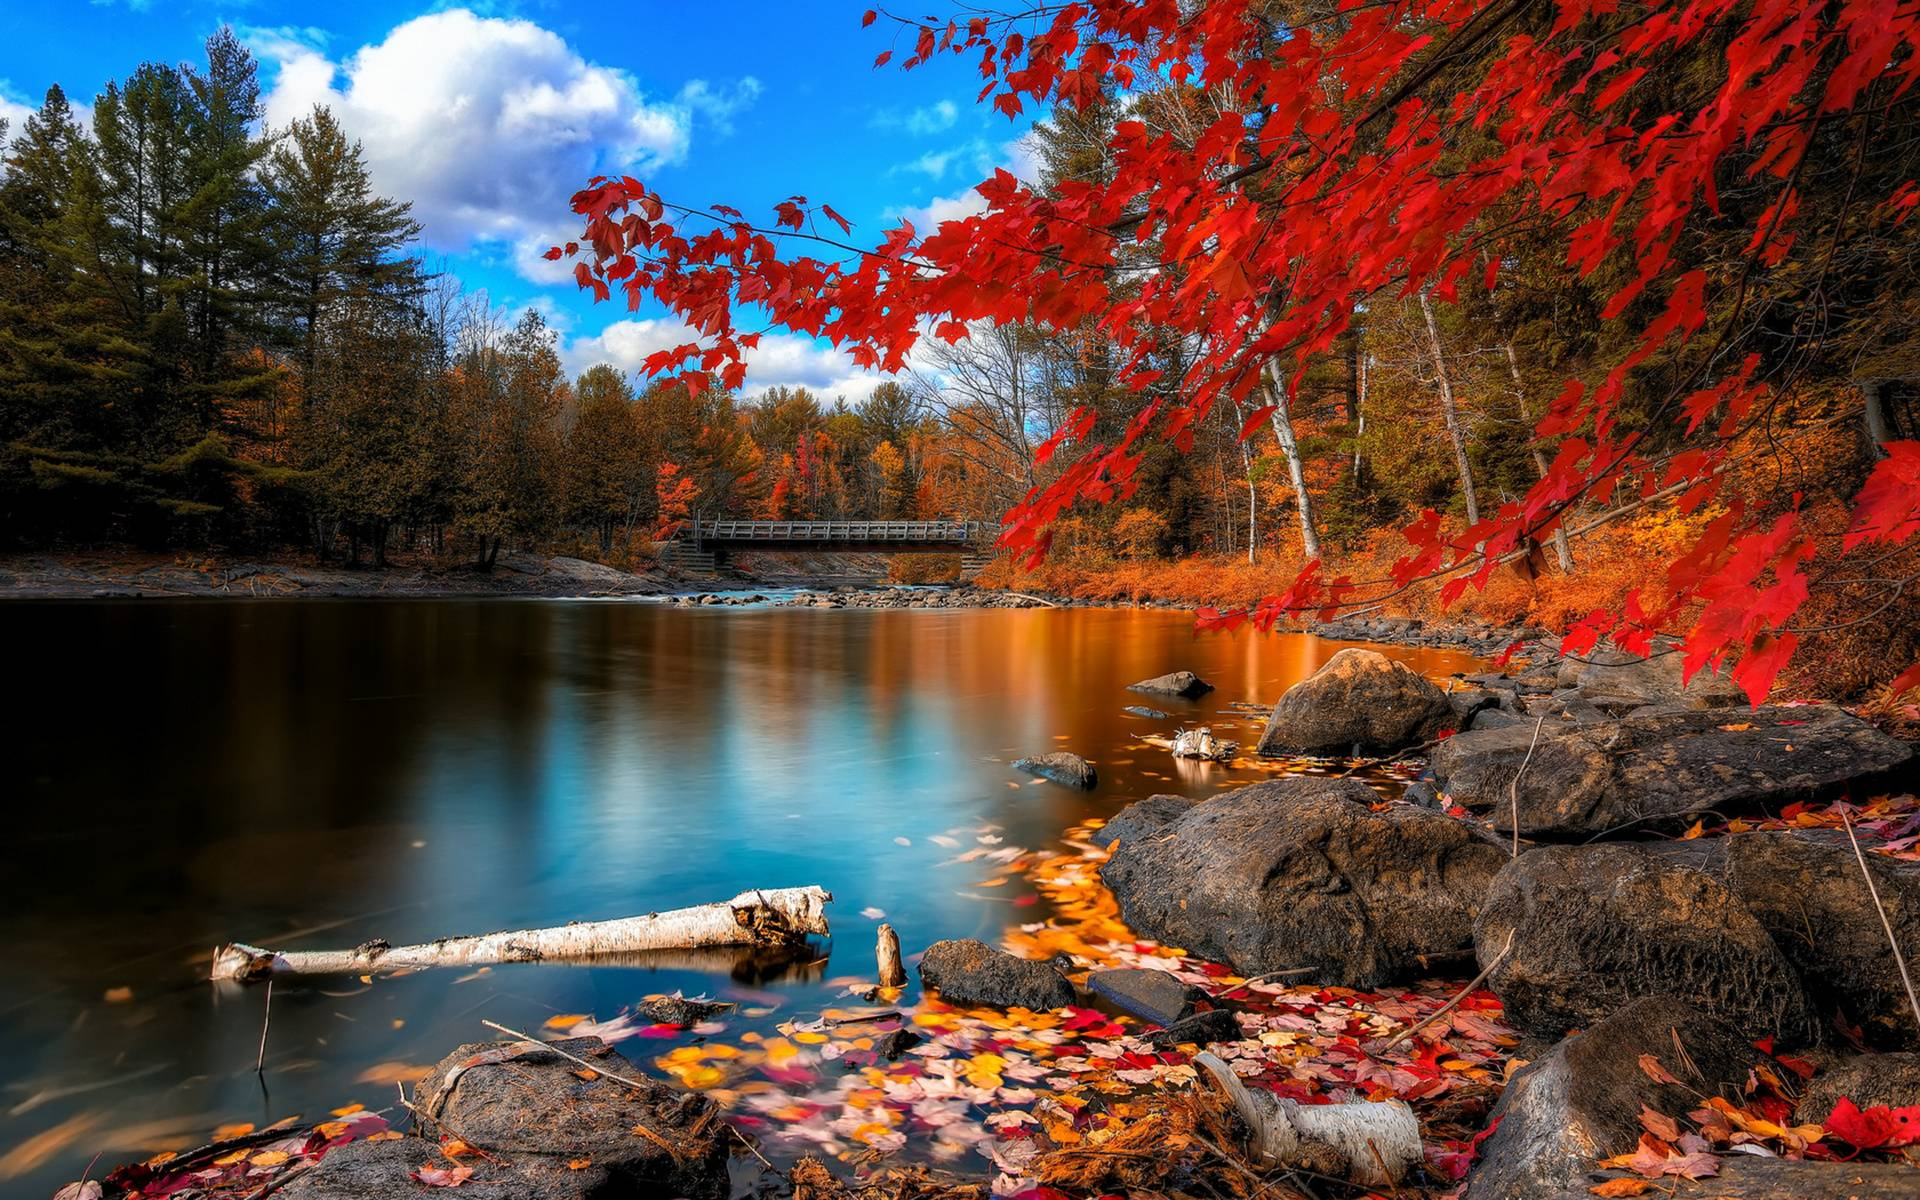 Fall Desktop Backgrounds - Wallpaper Cave